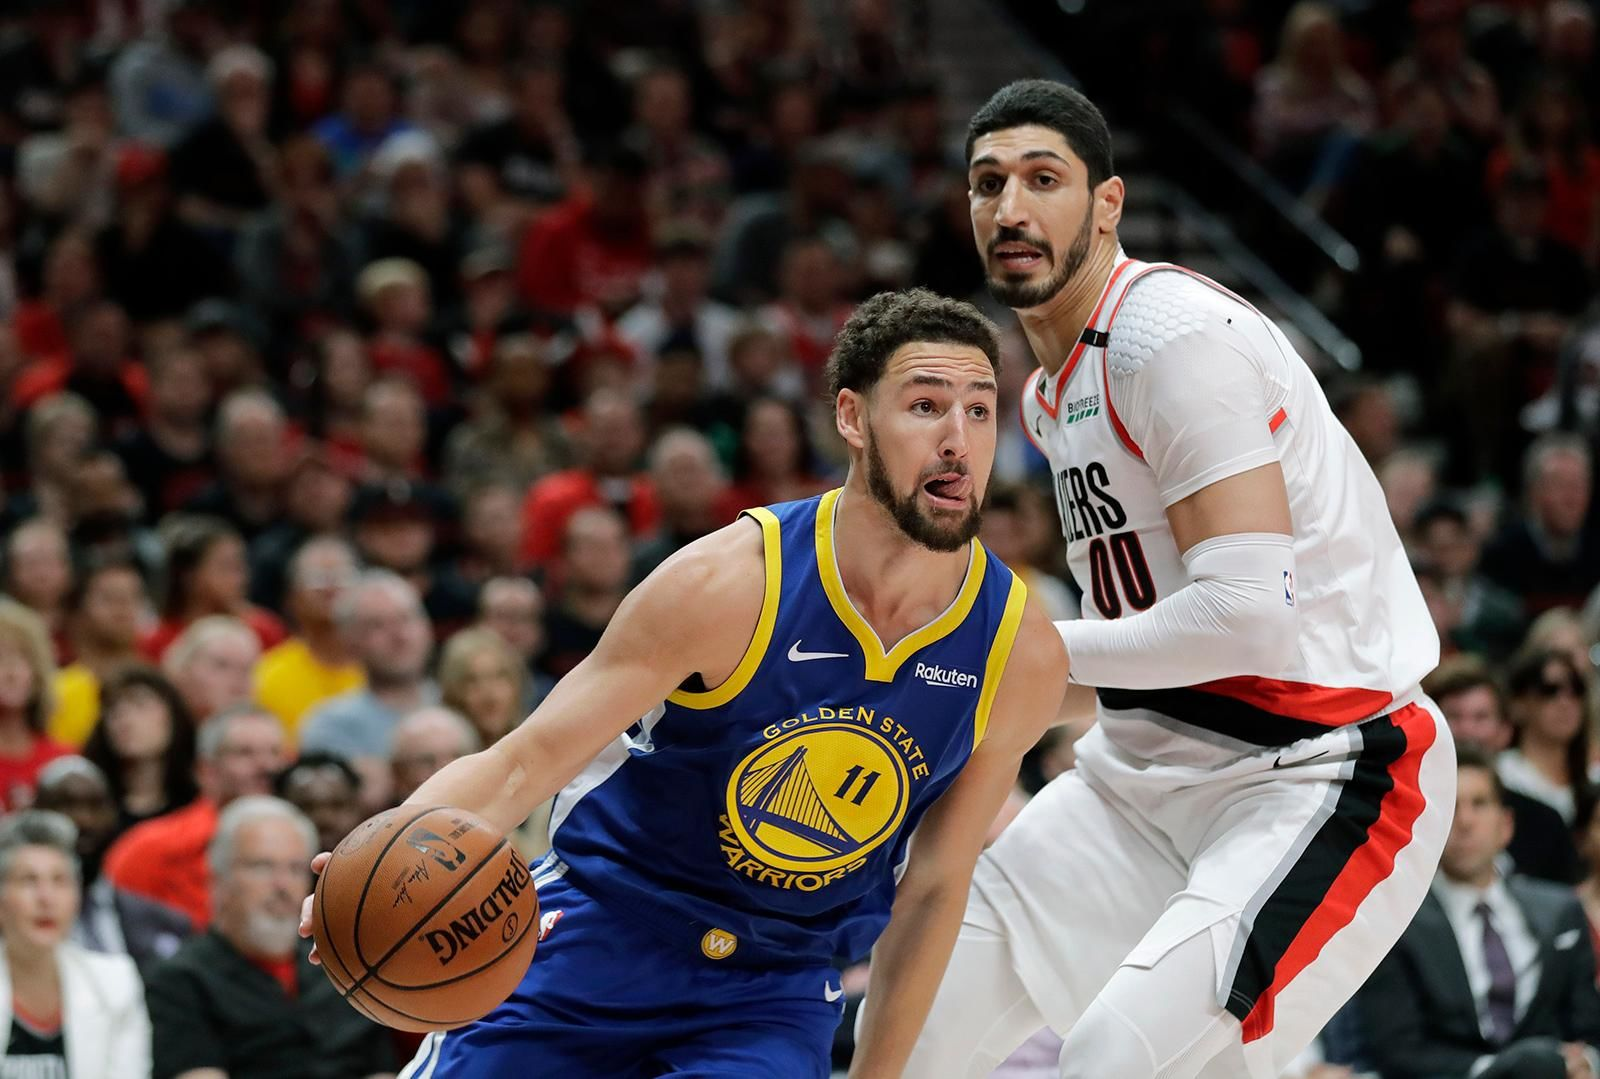 Golden State Warriors guard Klay Thompson (11) drives around Portland Trail Blazers center Enes Kanter, right, during the first half of Game 3 of the NBA basketball playoffs Western Conference finals, Saturday, May 18, 2019, in Portland, Ore. (AP Photo/Ted S. Warren)